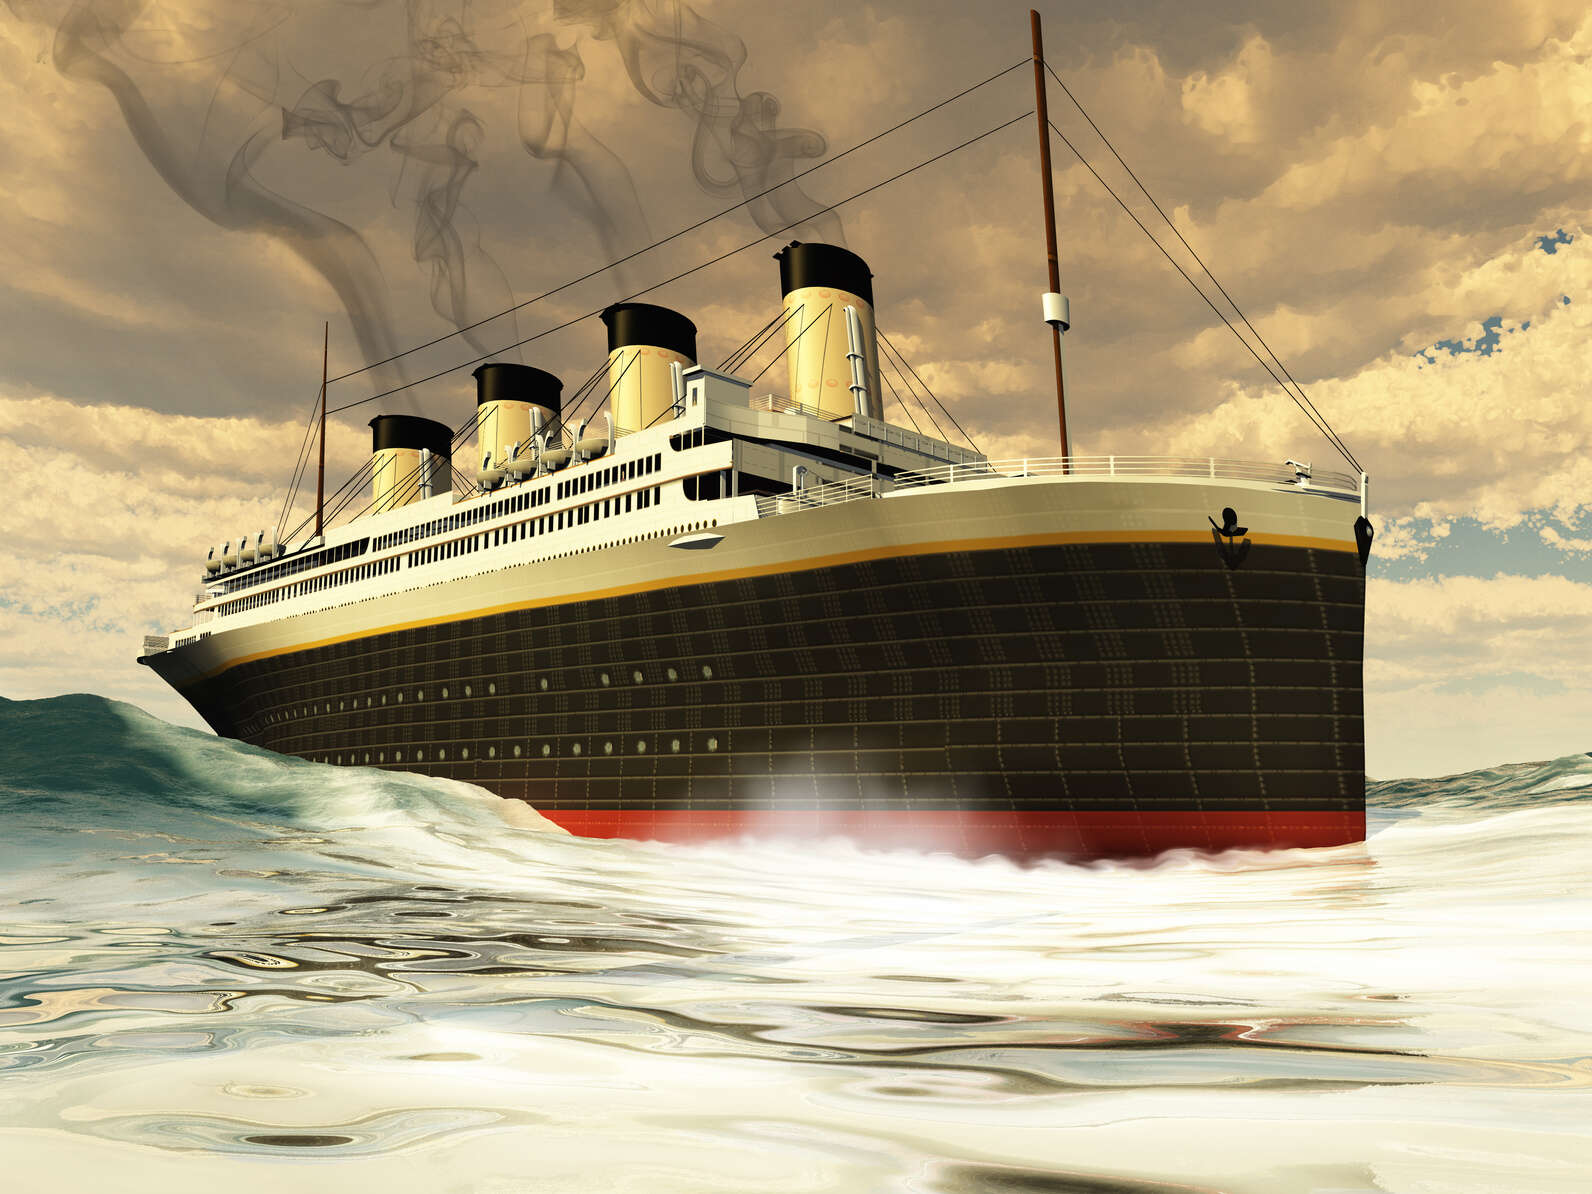 Will the Titanic II Sail? Take A Look At What She Will Look Like